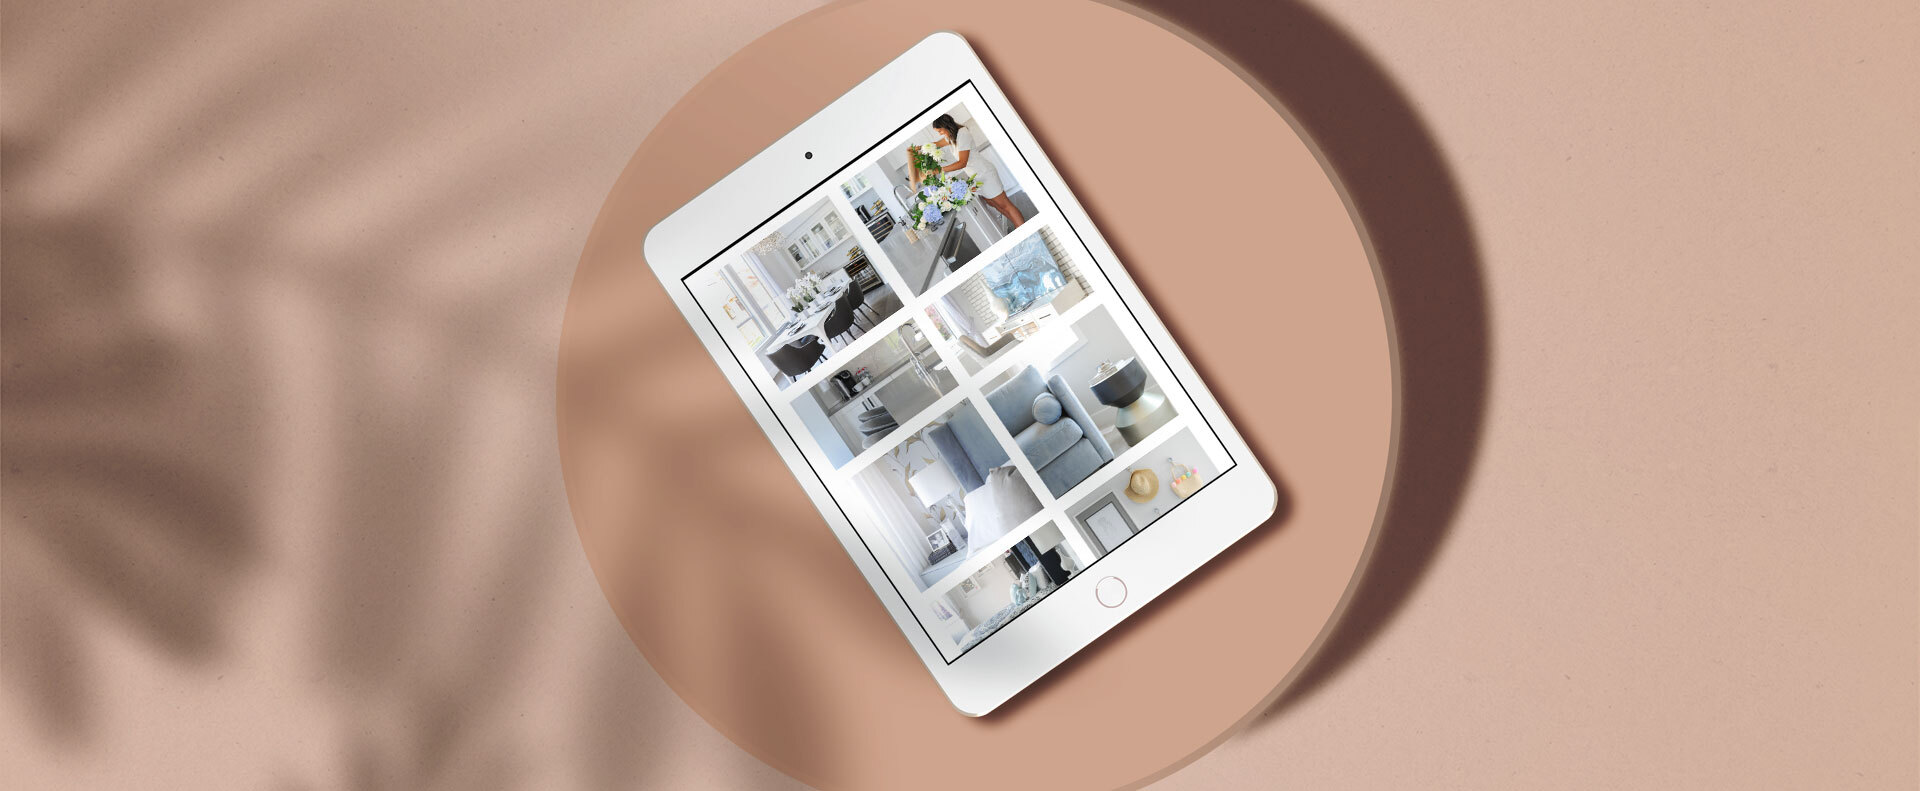 First Impressions website gallery shown on a tablet device - White Canvas Design